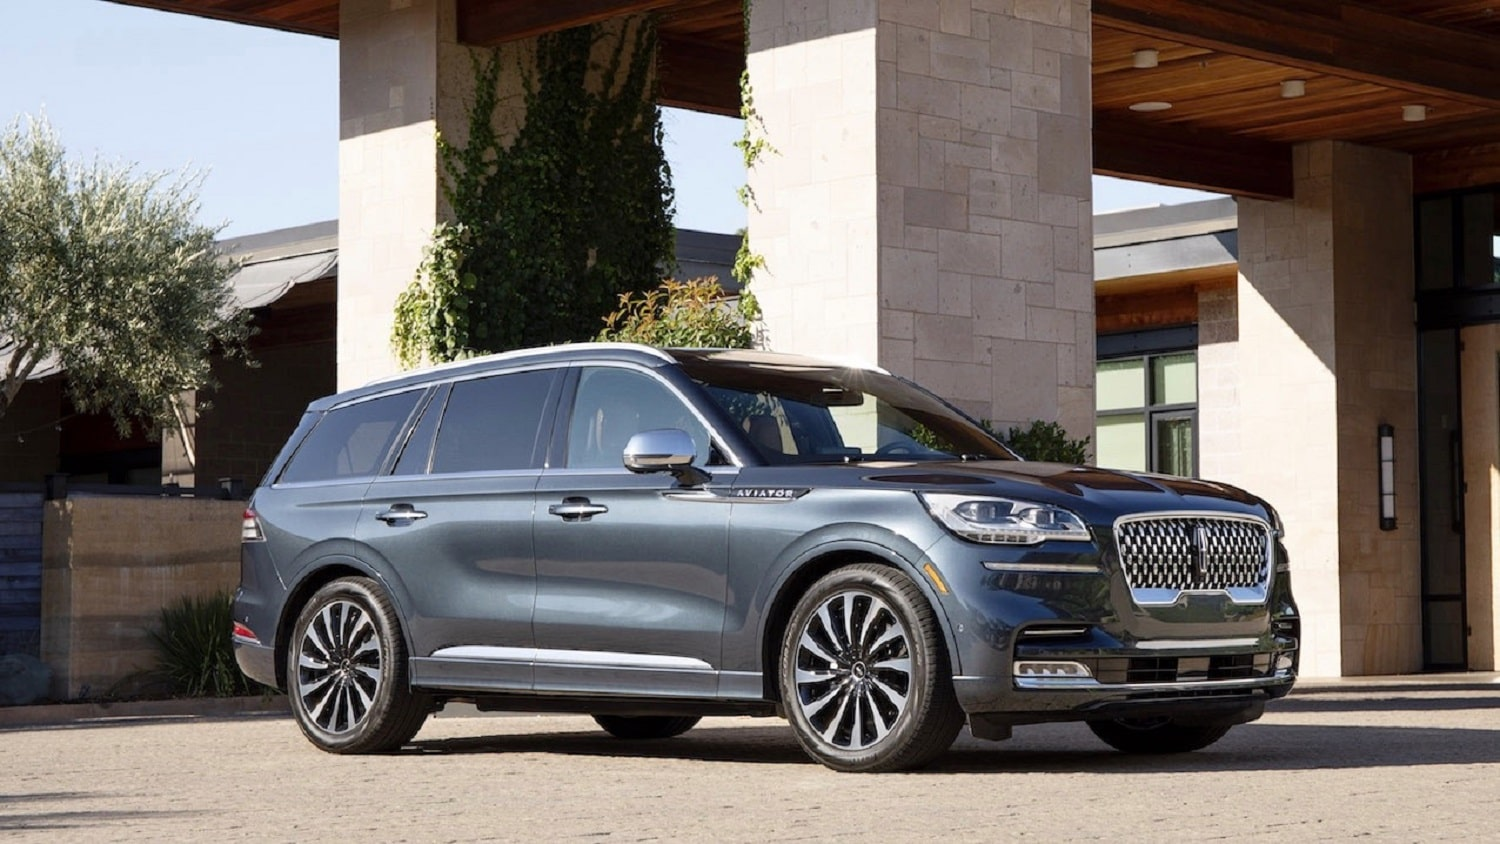 2020 LINCOLN AVIATOR GRAND TOURING PLUG-IN HYBRID